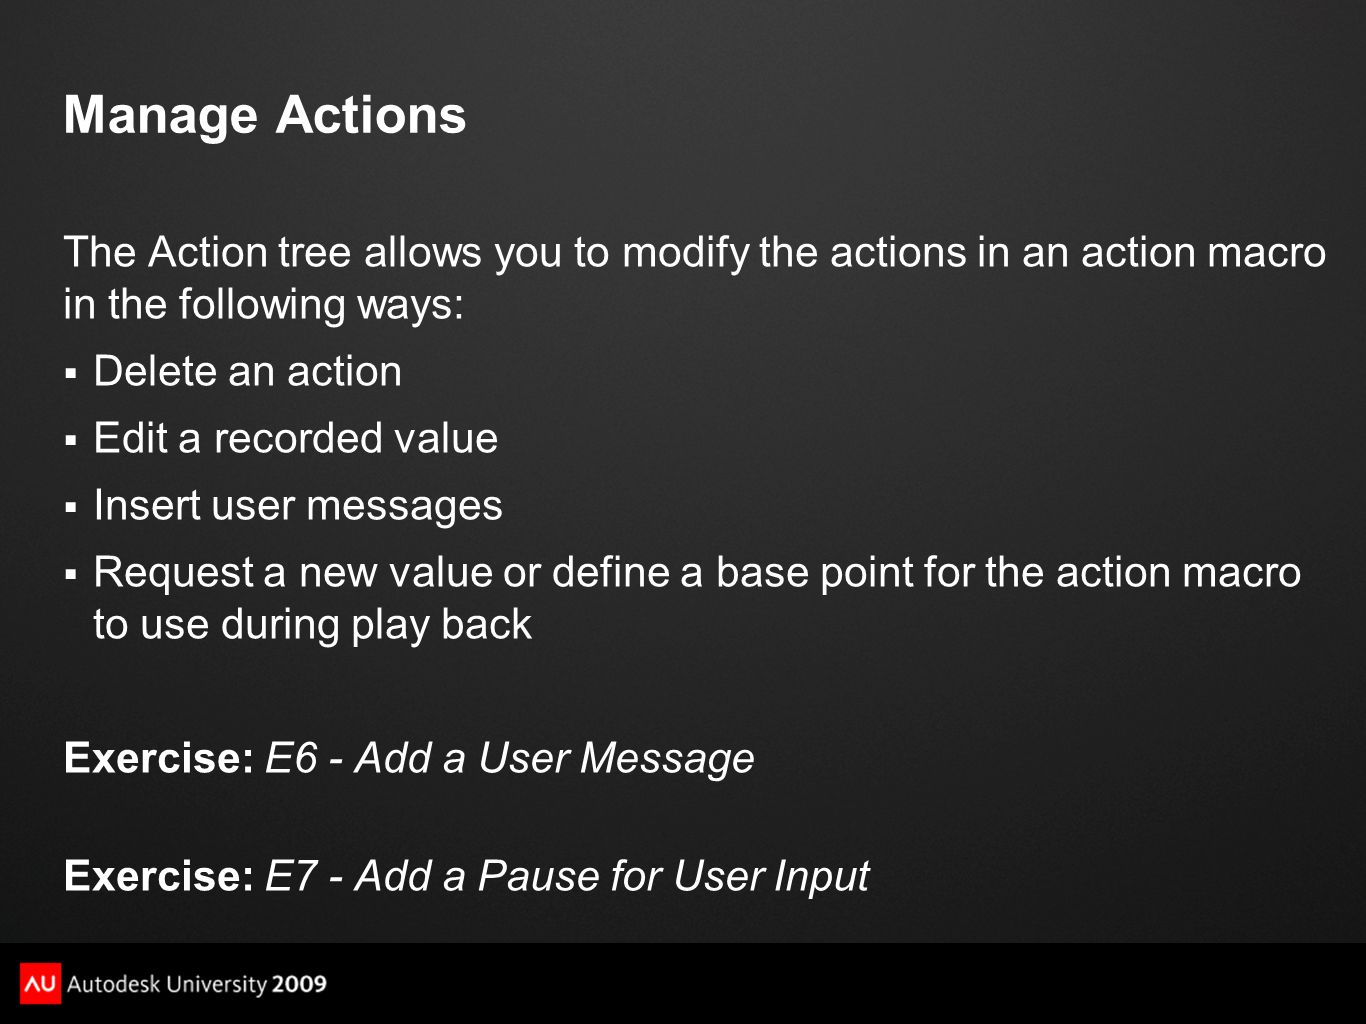 Manage Actions The Action tree allows you to modify the actions in an action macro in the following ways:  Delete an action  Edit a recorded value  Insert user messages  Request a new value or define a base point for the action macro to use during play back Exercise: E6 - Add a User Message Exercise: E7 - Add a Pause for User Input